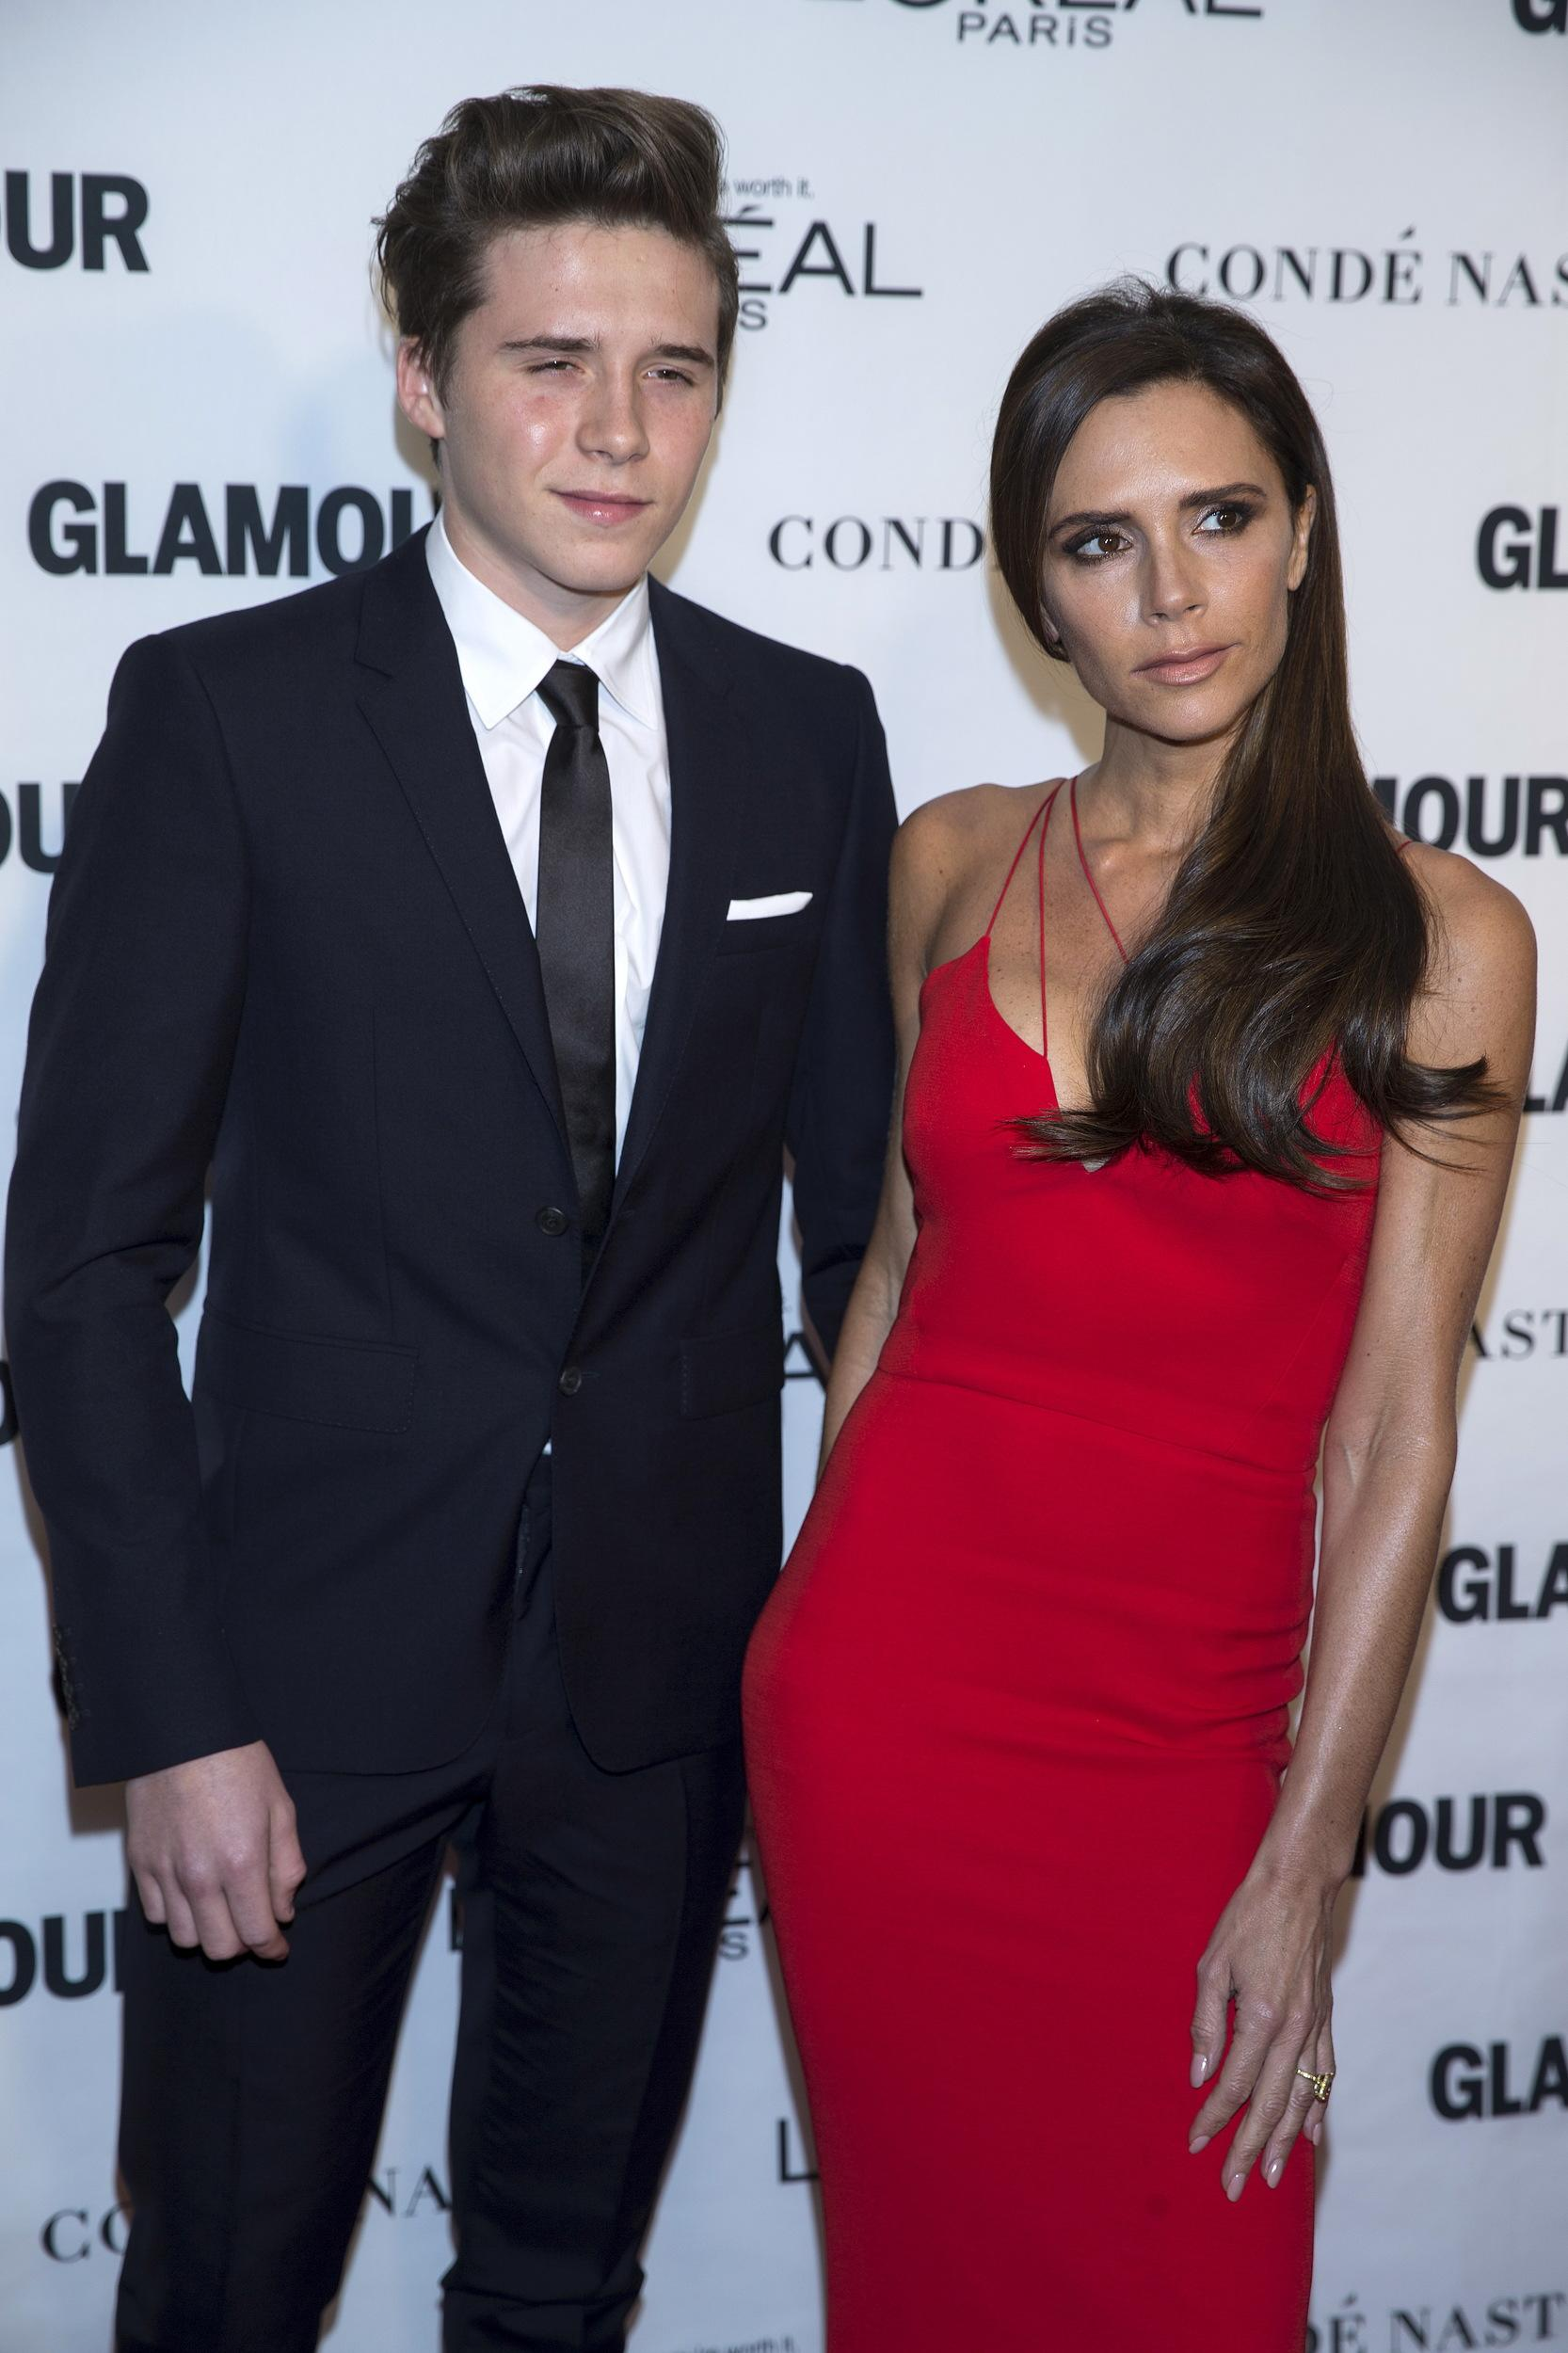 """Designer Victoria Beckham and son Brooklyn Beckham arrive for the """"Glamour Women of the Year Awards"""" in the Manhattan borough of New York, November 9, 2015. REUTERS/Carlo Allegri"""